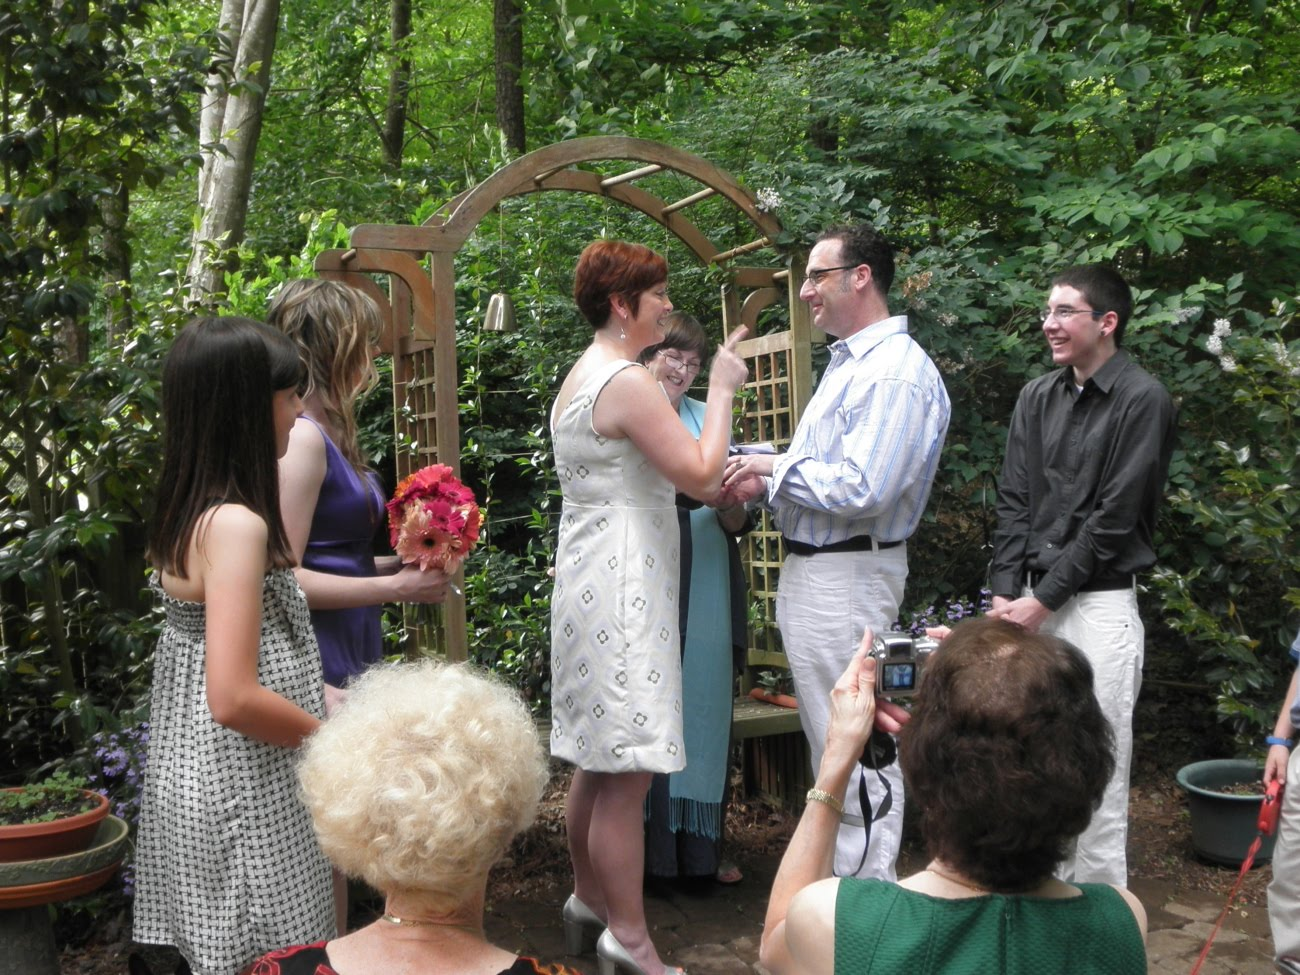 raleigh wedding blog paige and martin marry in kayelily u0027s wedding